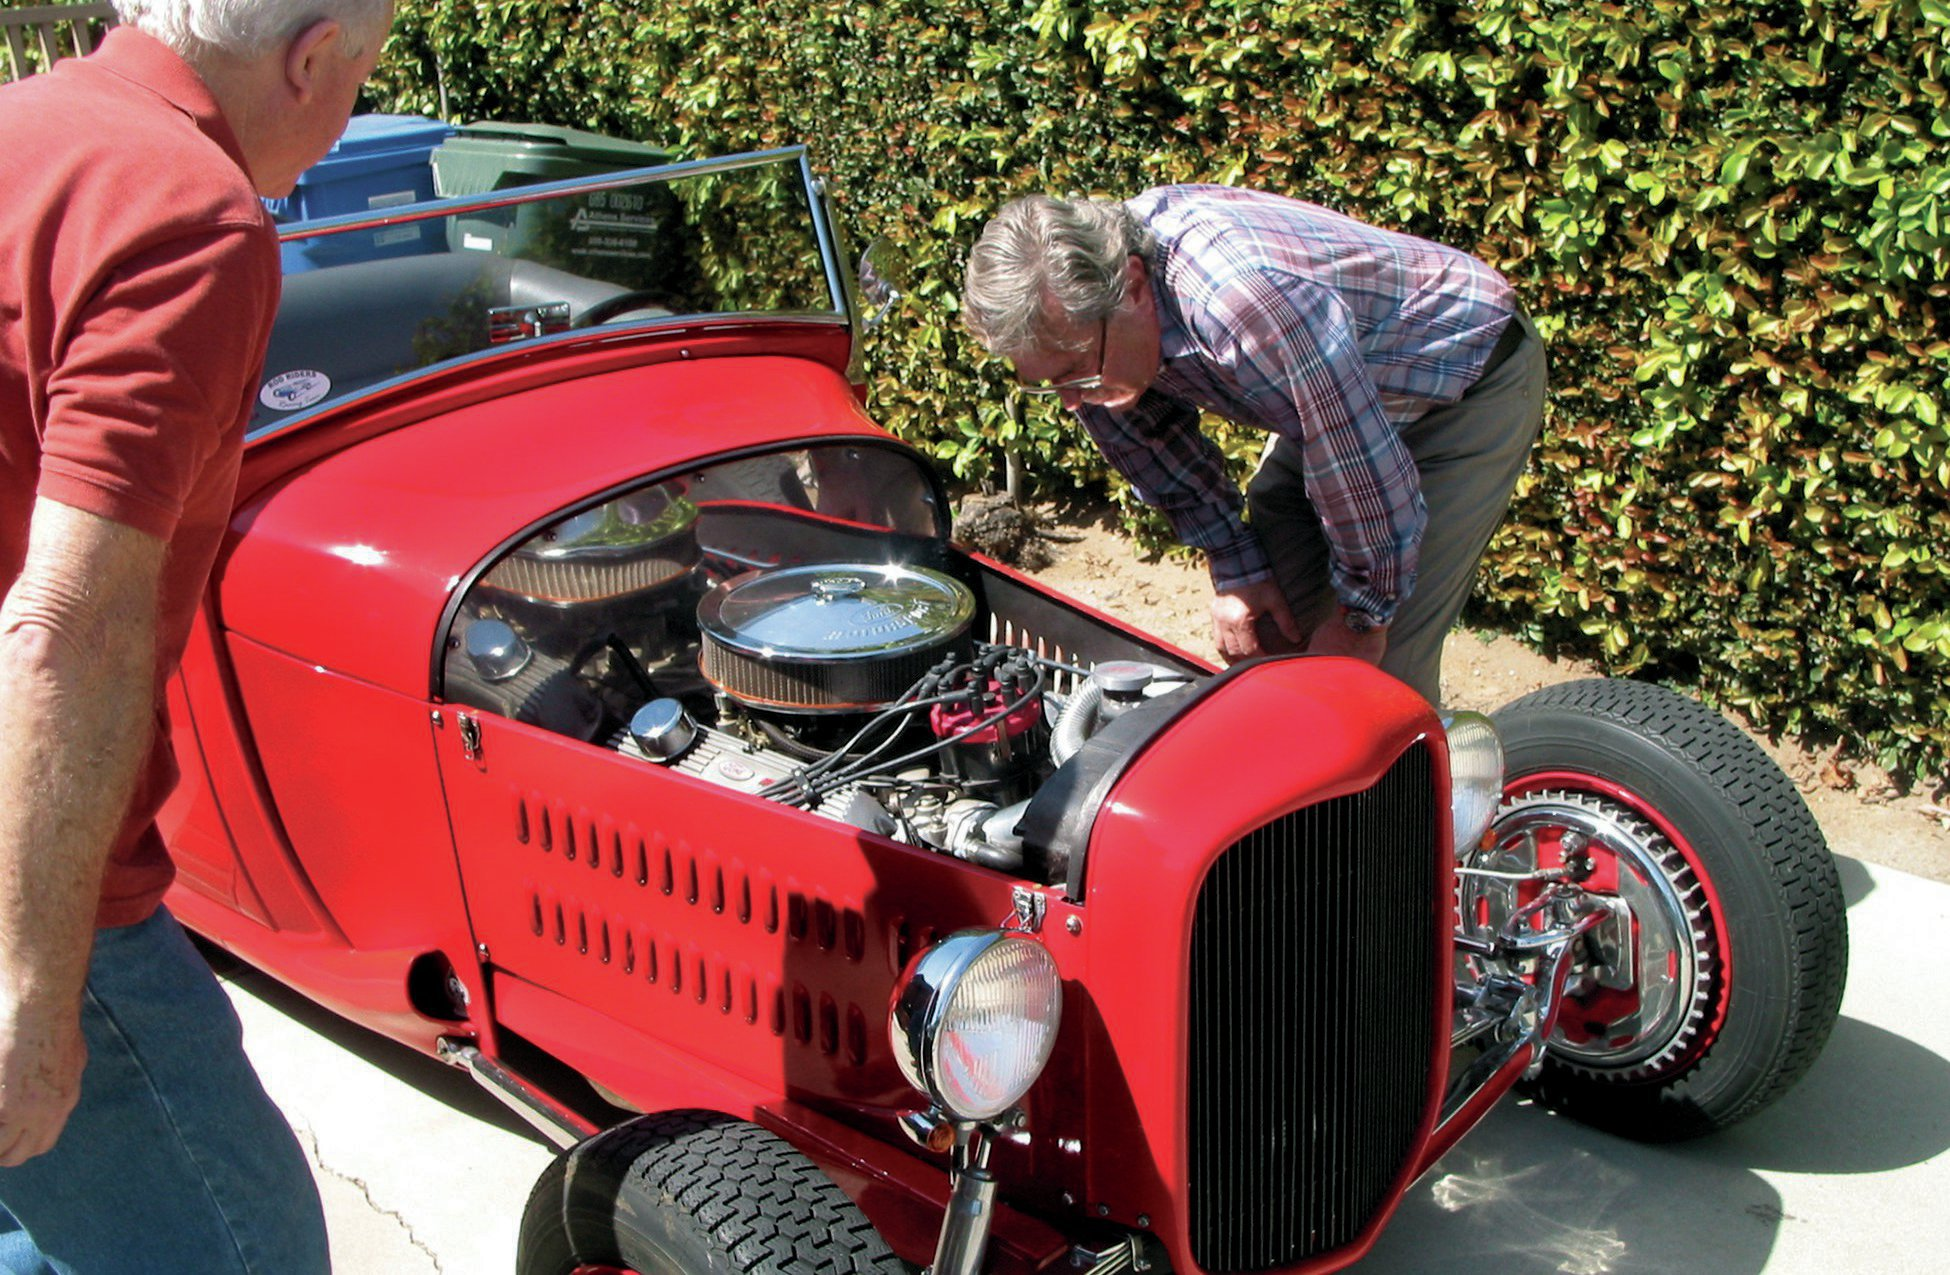 David C. Martin, March 18, 2014, seeing the car for the first time in 53 years!